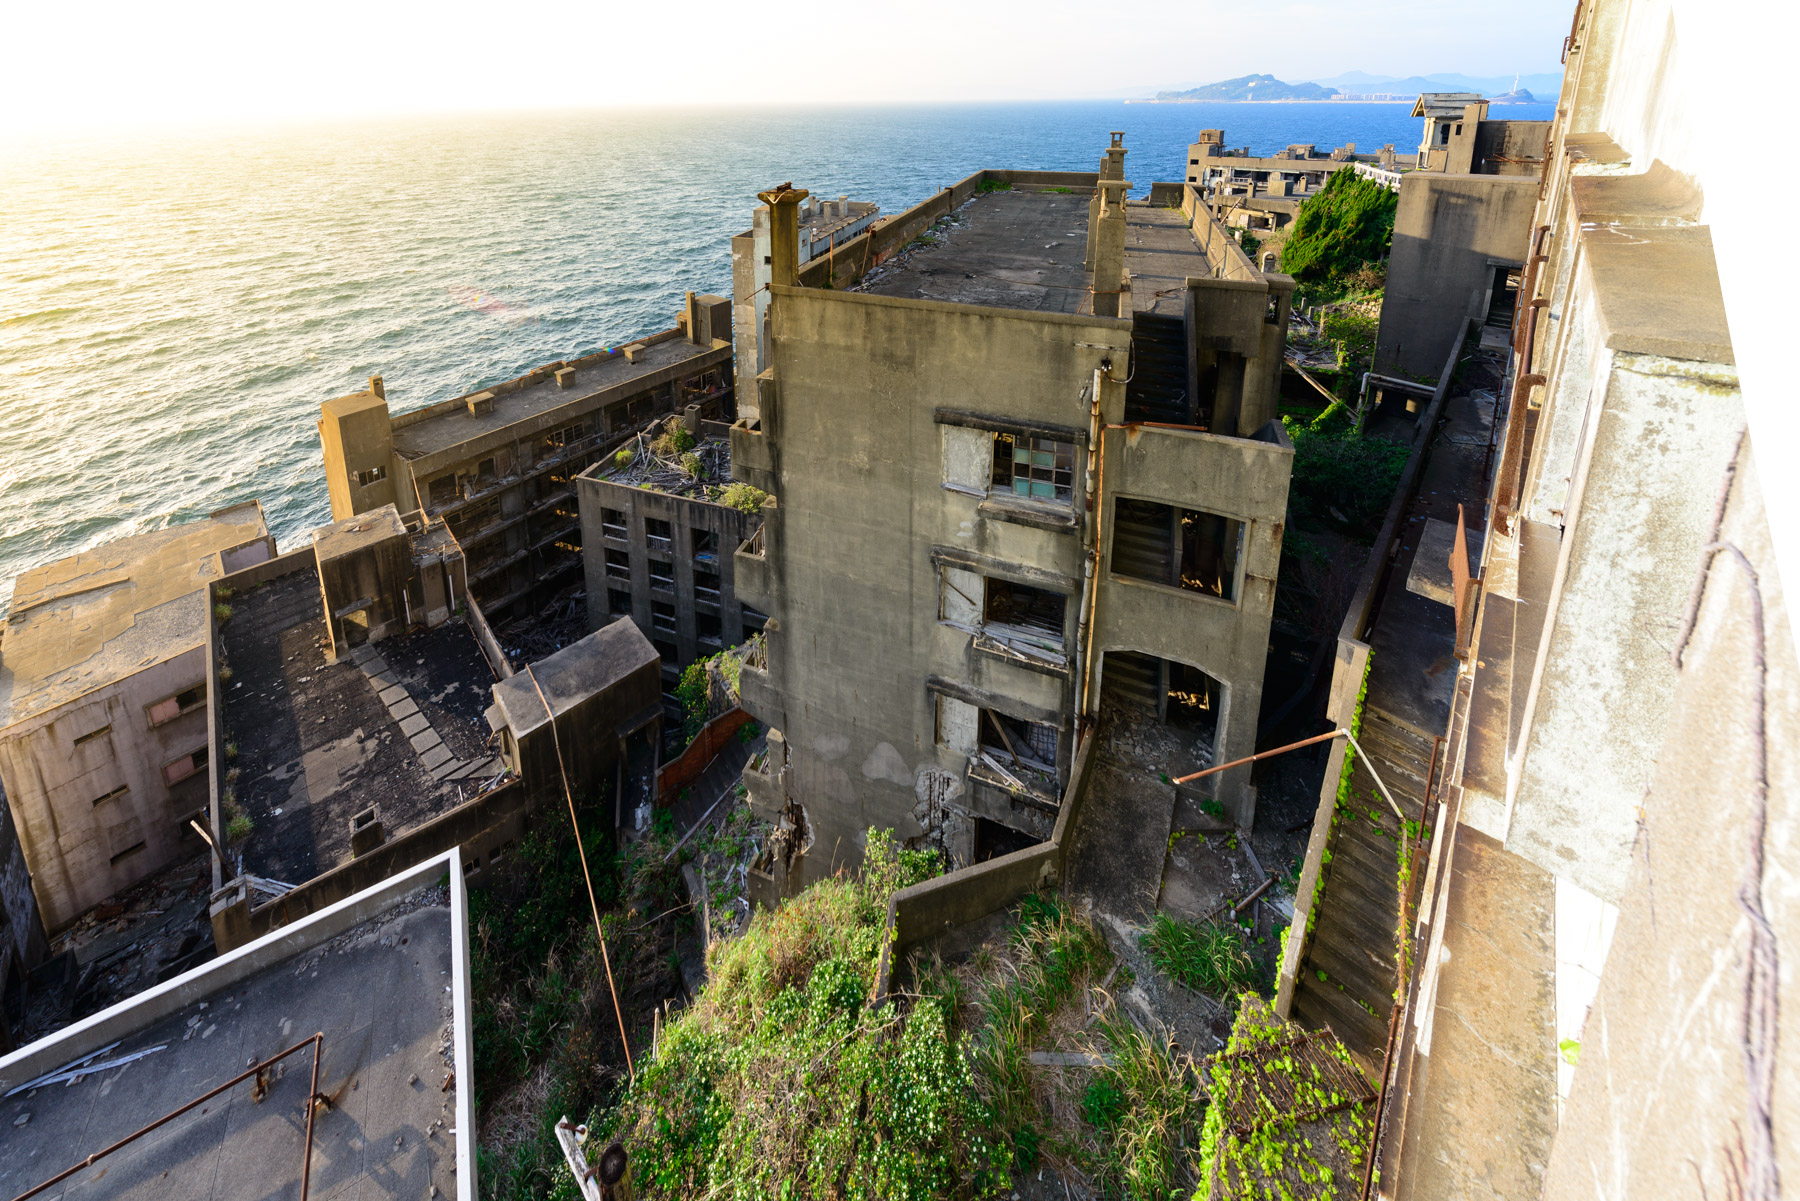 abandoned, apartment, asia, gunkanjima, haikyo, japan, japanese, kyushu, nagasaki, ruin, urban exploration, urbex